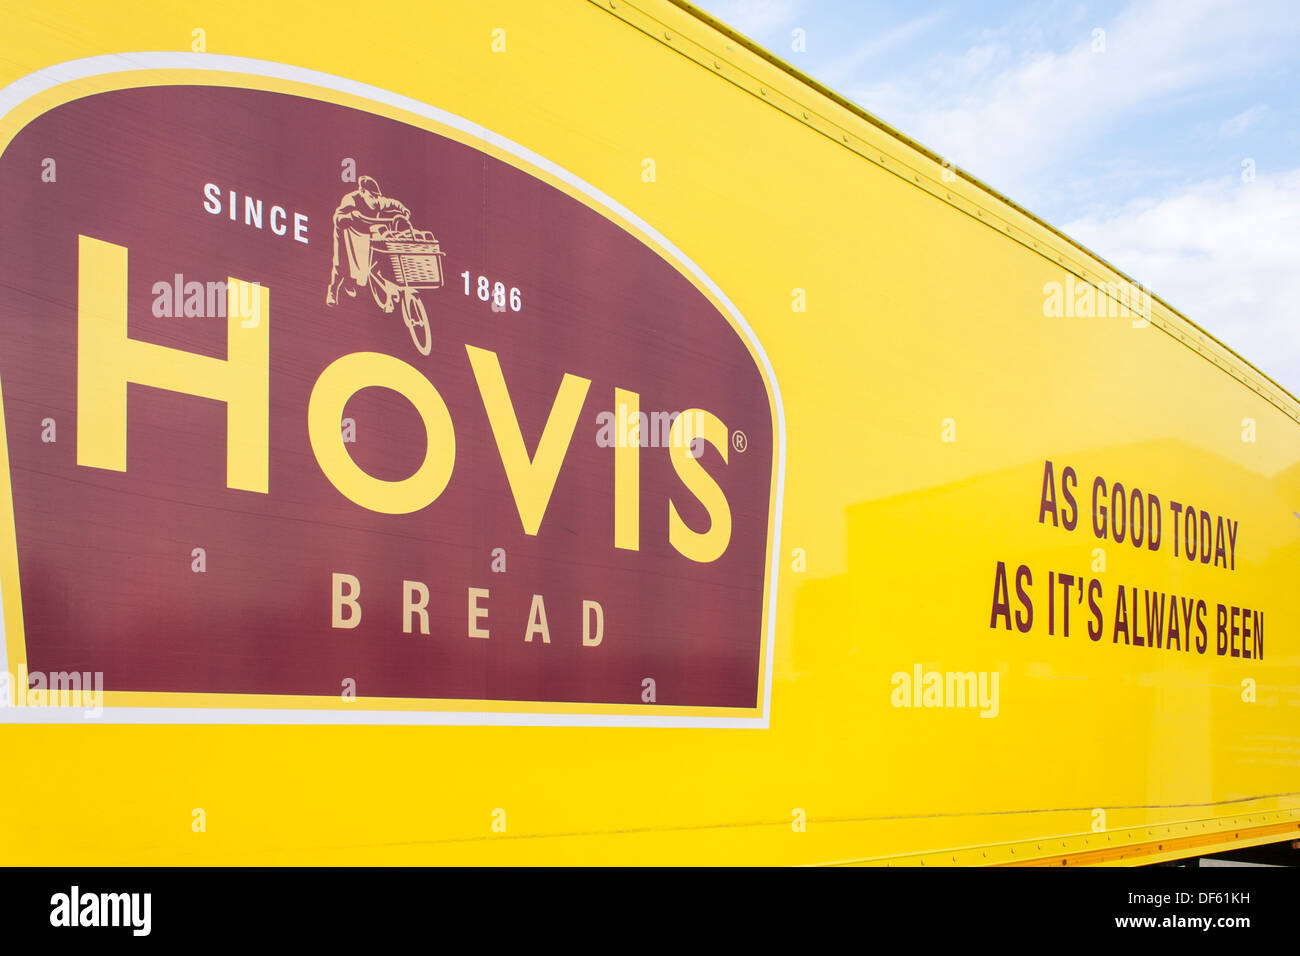 Side of HGV delivery lorry with Hovis company branding: logo, slogan, colours - Stock Image